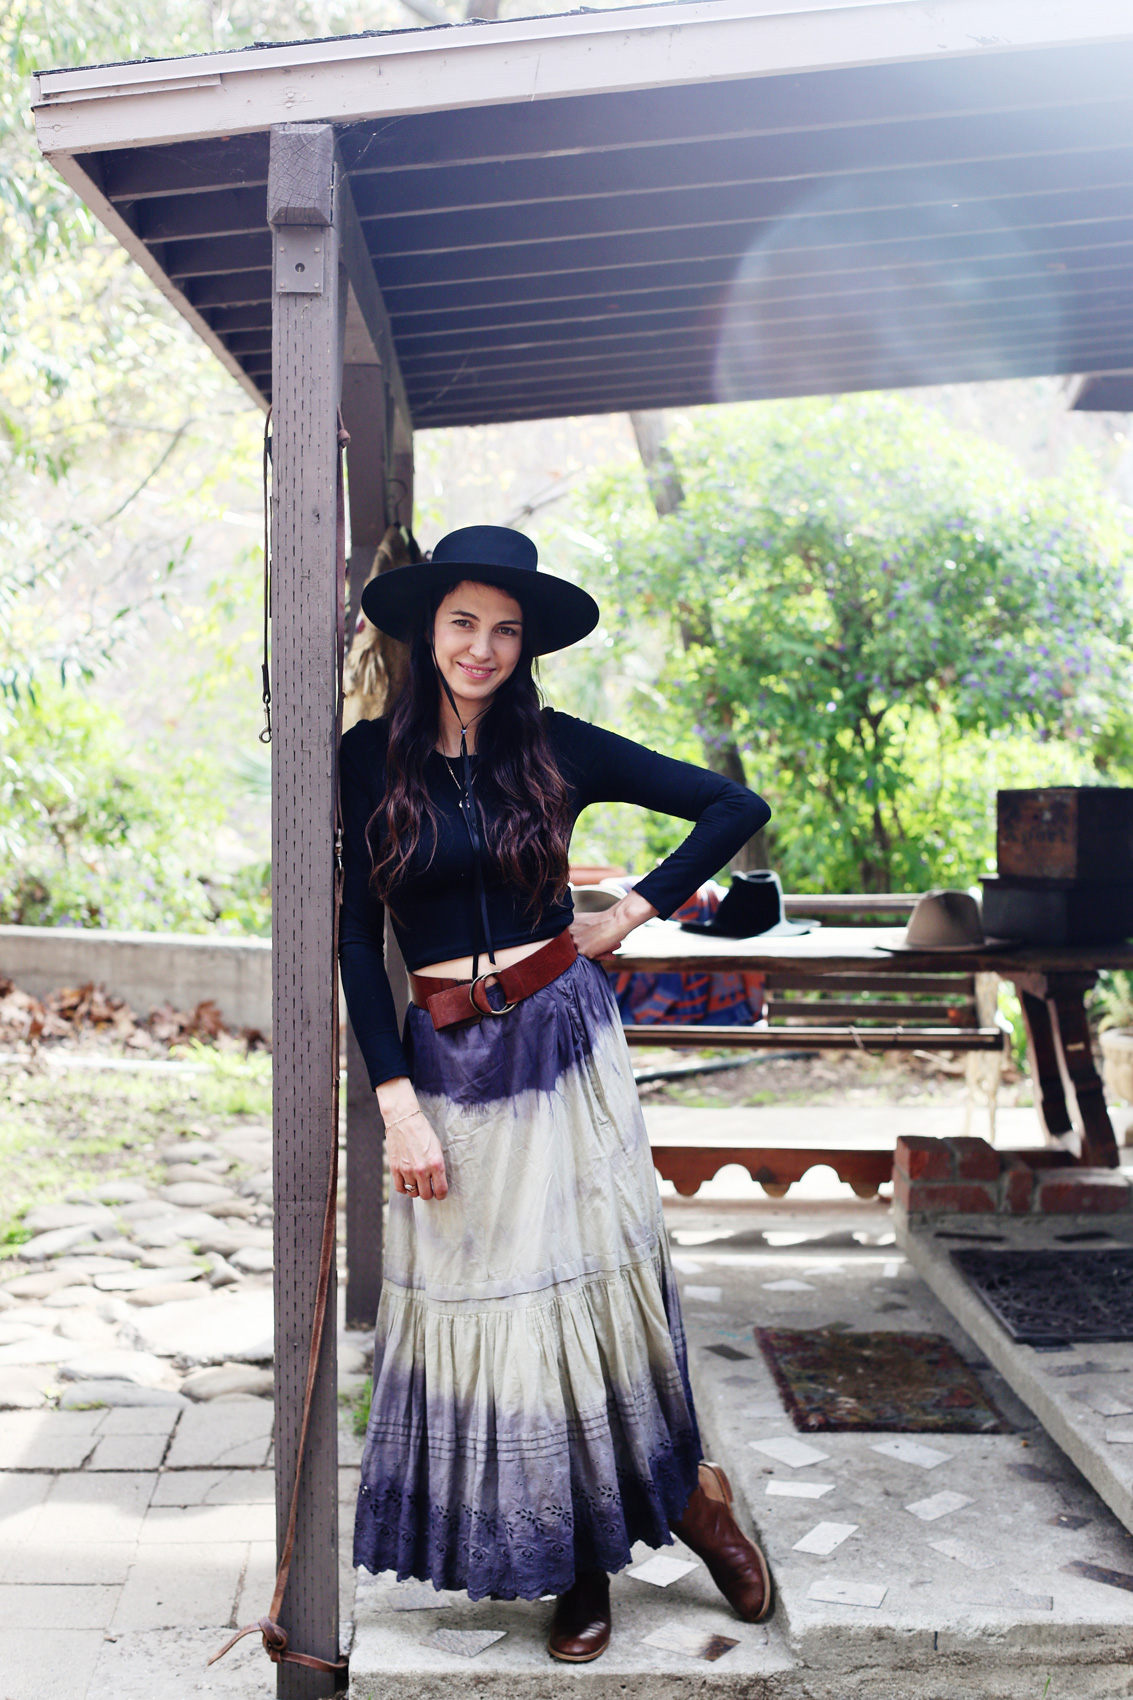 Shiva Rose wearing a black hat standing on an outdoor porch